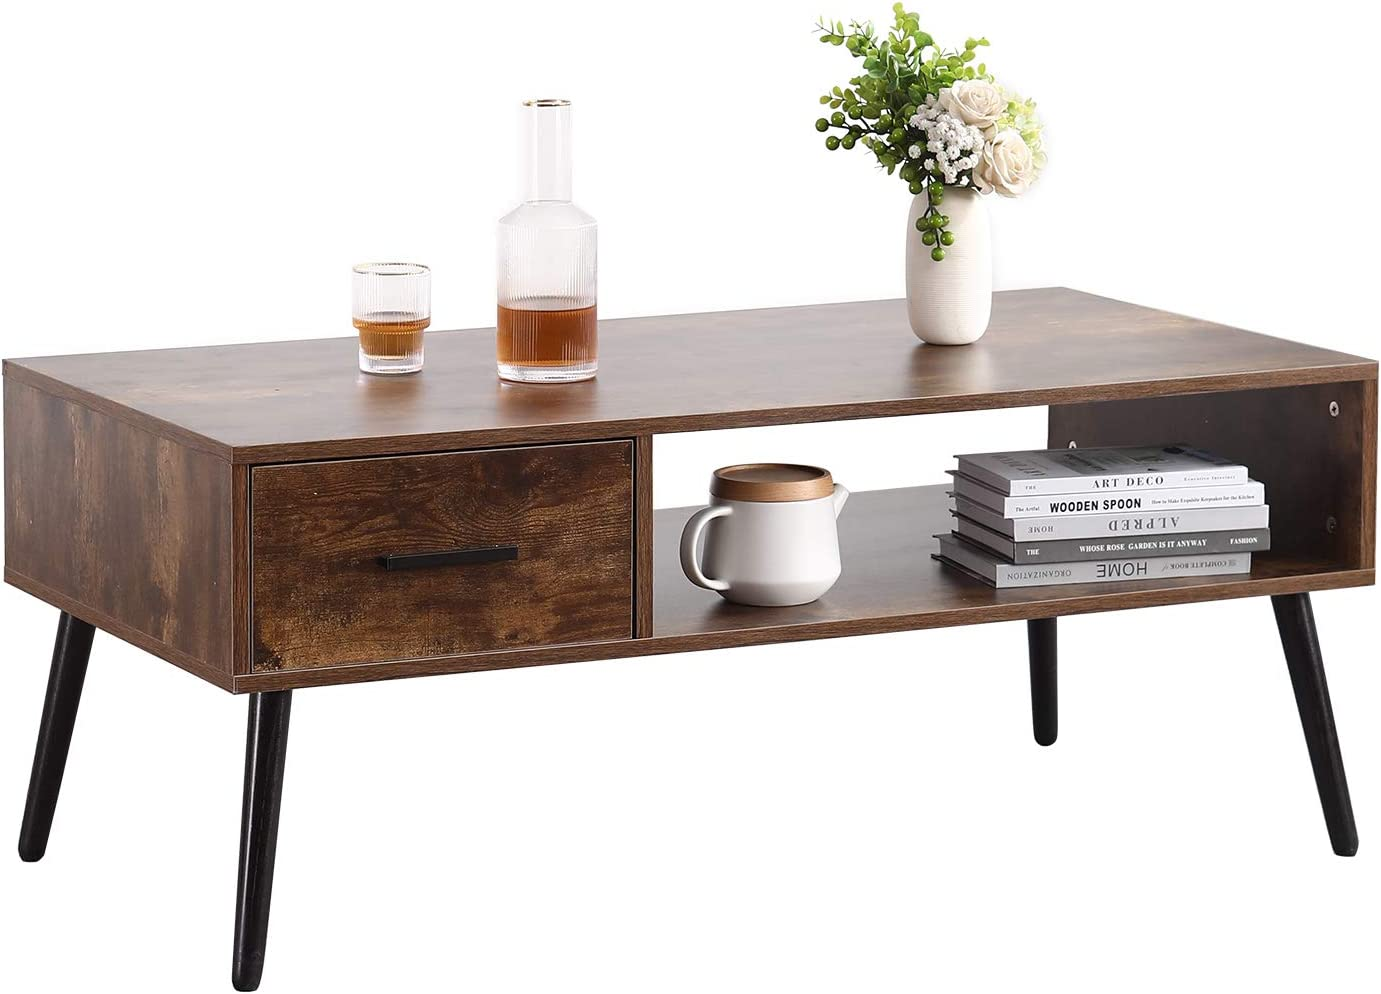 TINSAWOOD Coffee Table Japan Maker New Mid-Century Daily bargain sale Cocktail Rectangl Boho